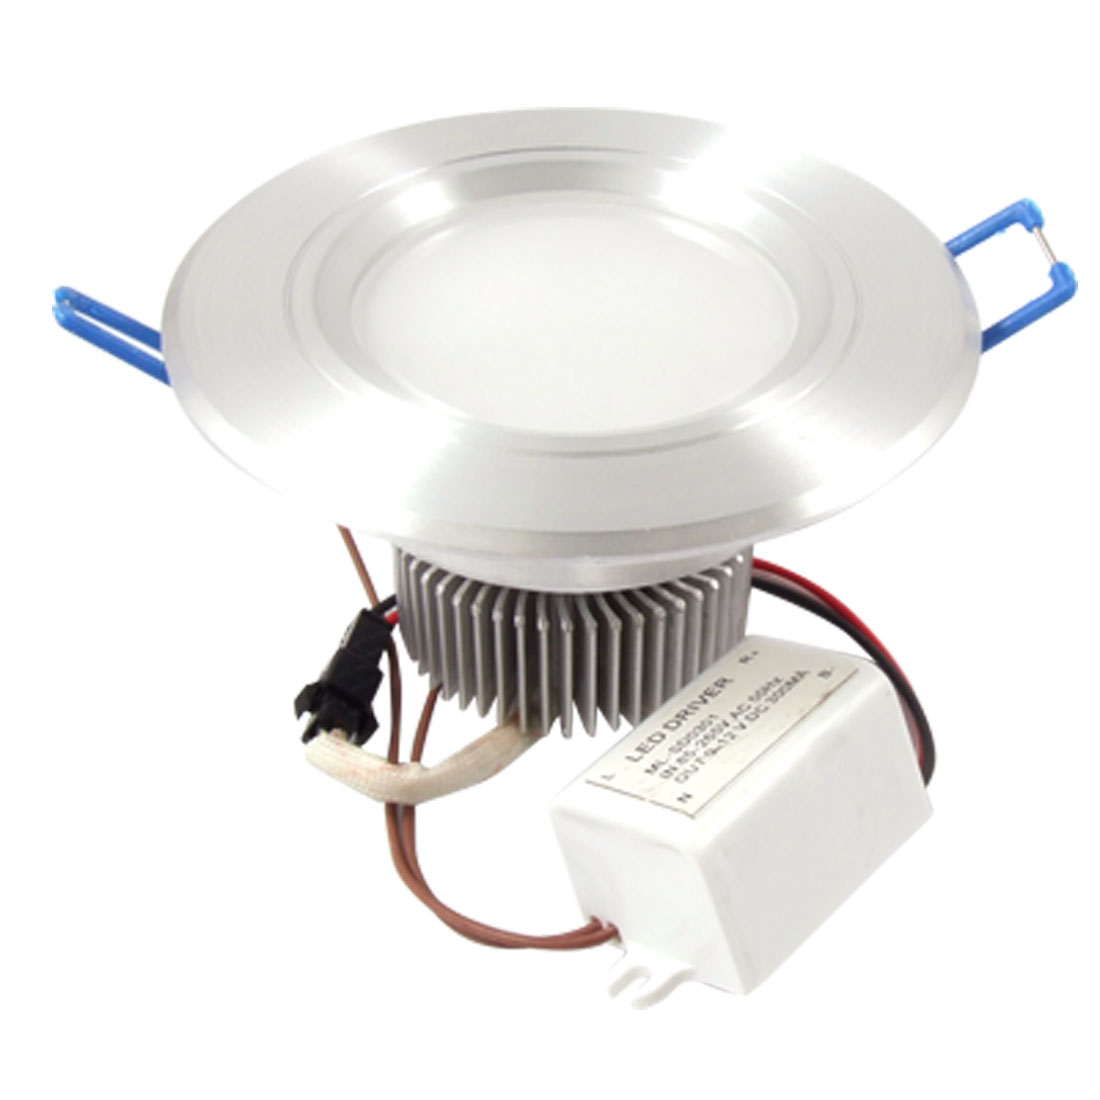 3W 3 x 1W Warm White 3 LEDs Recessed Ceiling Down Bulb Lamp w LED driver